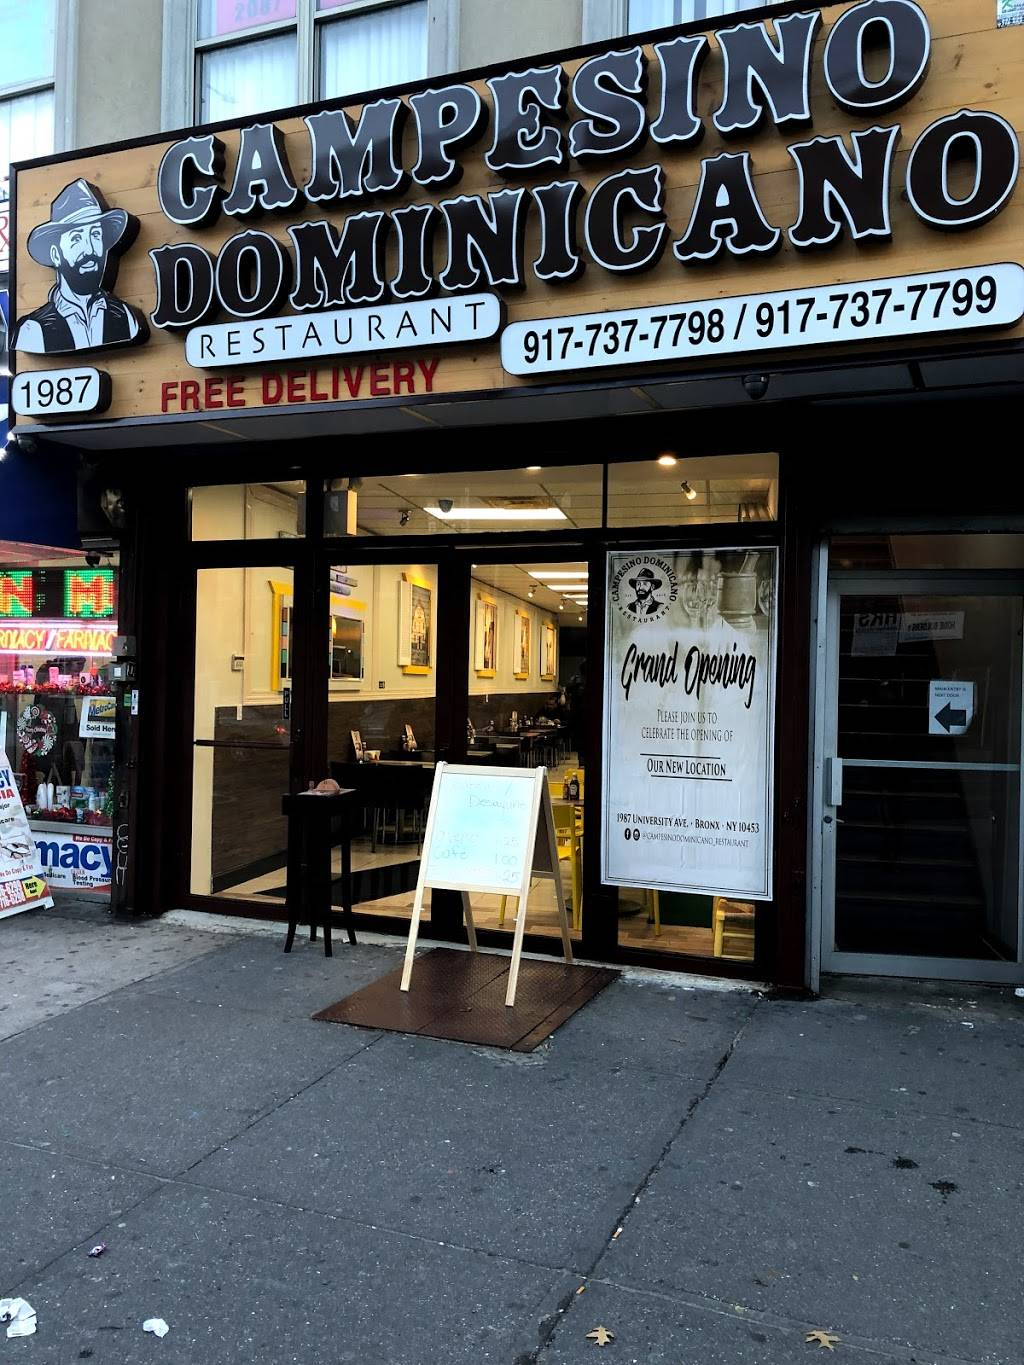 Campesino Dominicano Restaurant | restaurant | 1987 University Ave, Bronx, NY 10453, USA | 9177377798 OR +1 917-737-7798